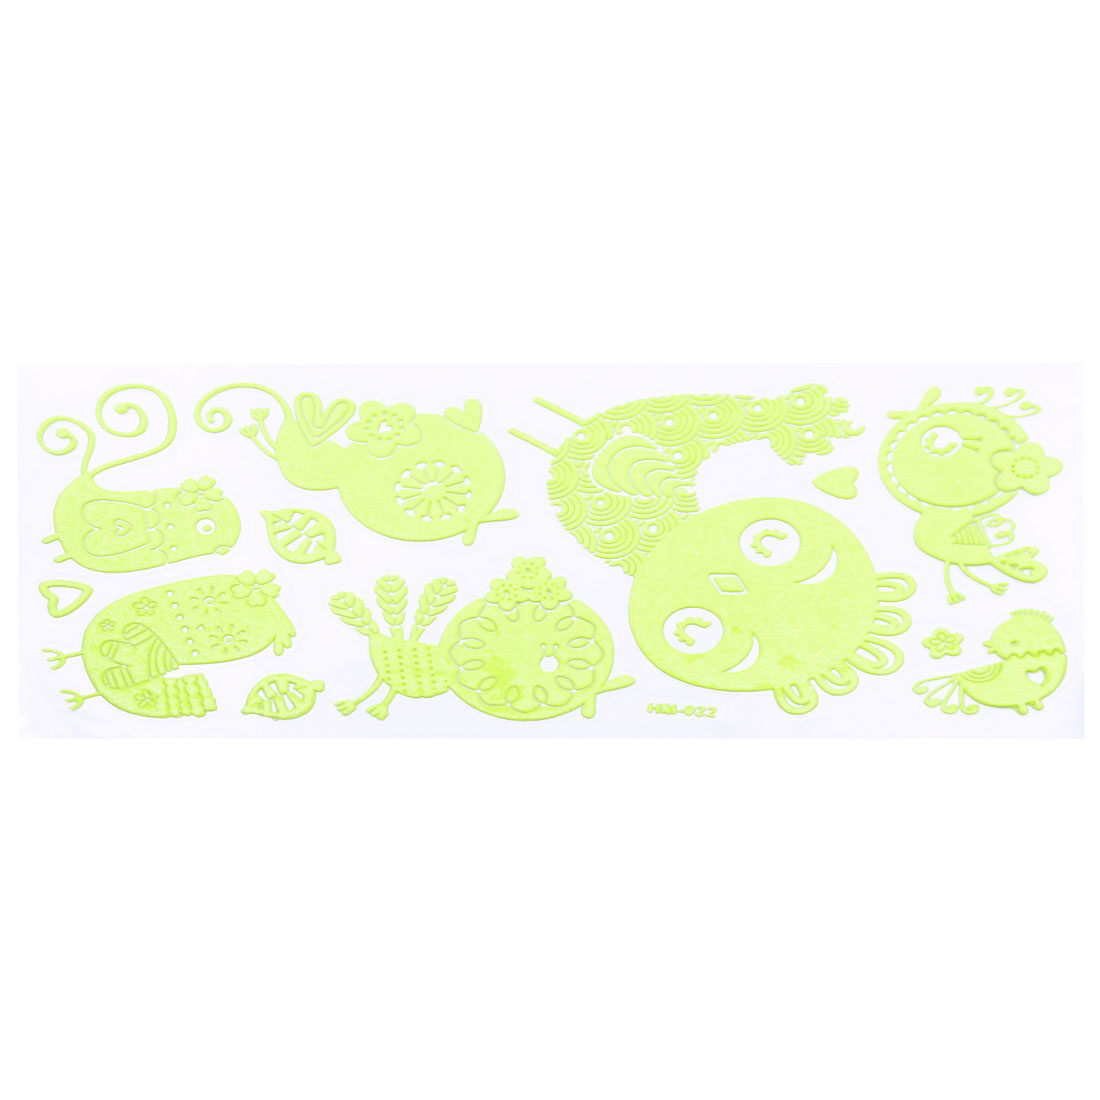 Wall Decor Cute Chicken Design Light Green Luminous Stickers 12 in 1